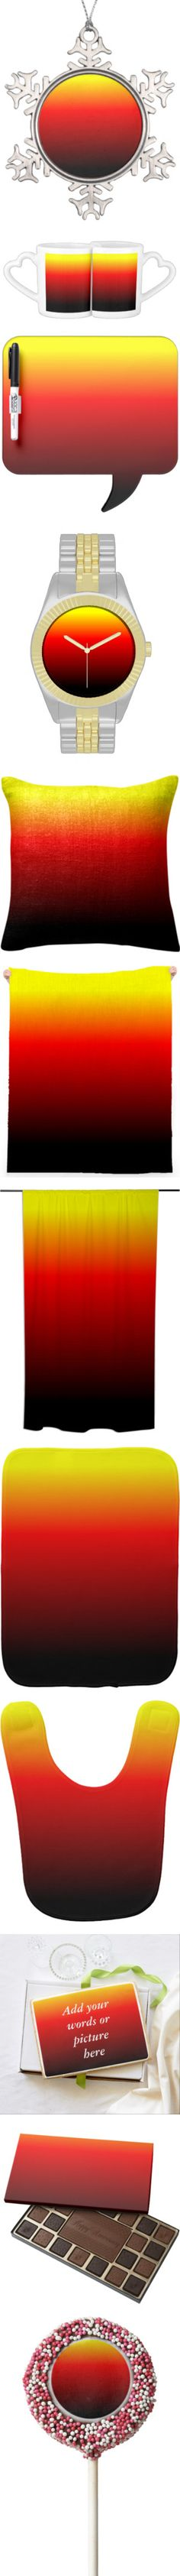 """My """"OMBRE SUNSET"""" #1 Collection For Sale by artist4god-rose-santuci-sofranko on Polyvore featuring polyvore, home, home decor, holiday decorations, decor, holiday, ornament, holiday ornaments, holiday decor, holiday home decor, fashion, jewelry, watches, ombre jewelry, sun, sunset, necklaces, bib necklace, bib jewelry, ombre necklace, accessories, hats, pewter ornaments, holiday tree skirts, bracelets, ombre bracelet, bracelet bangle, bracelet jewelry, hair accessories, scarves, ombre…"""